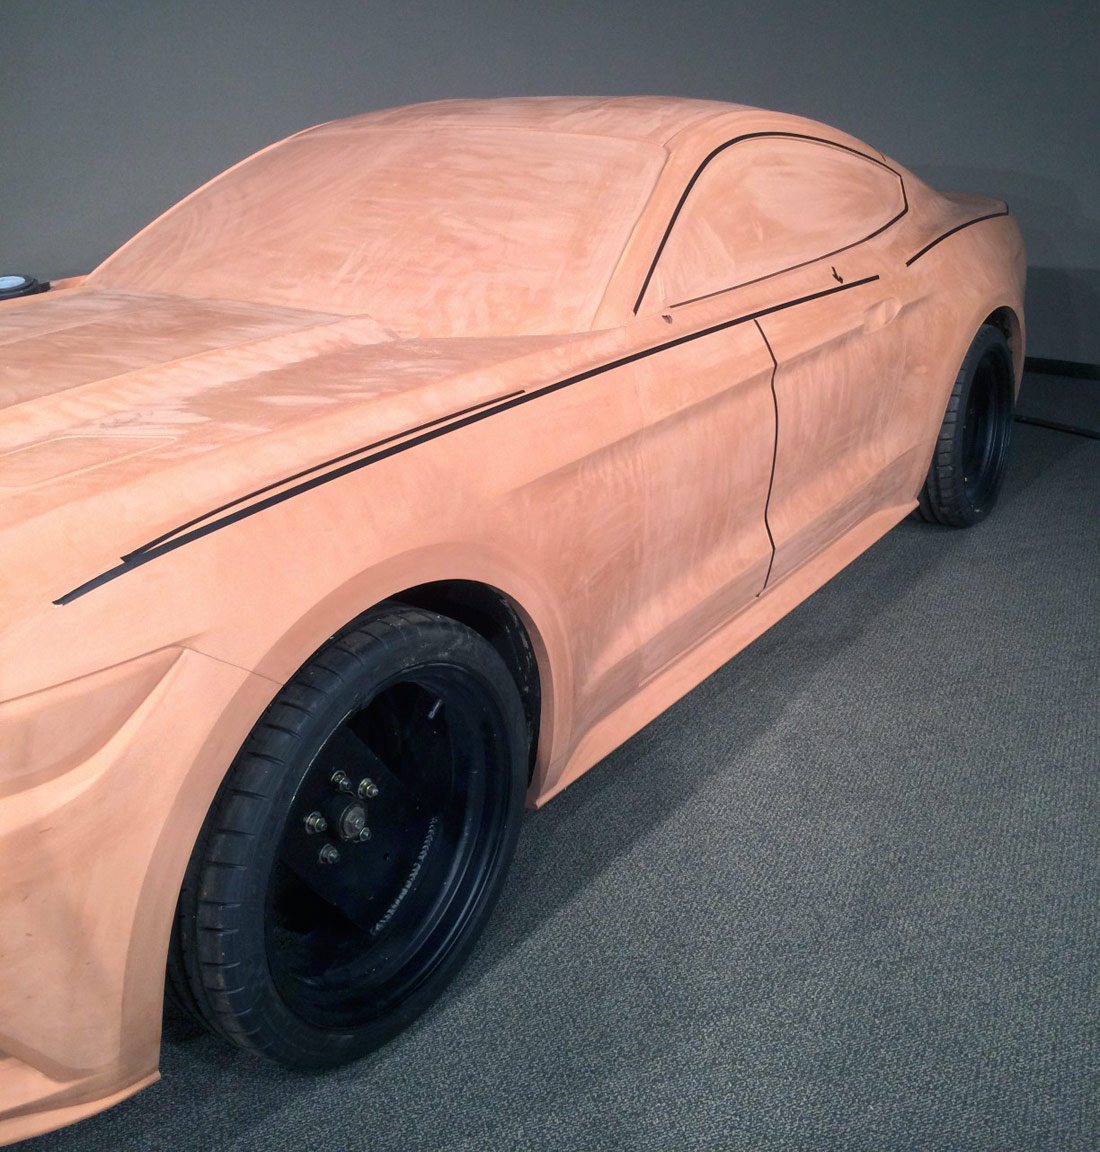 We understand how to mold a plasticine from a car